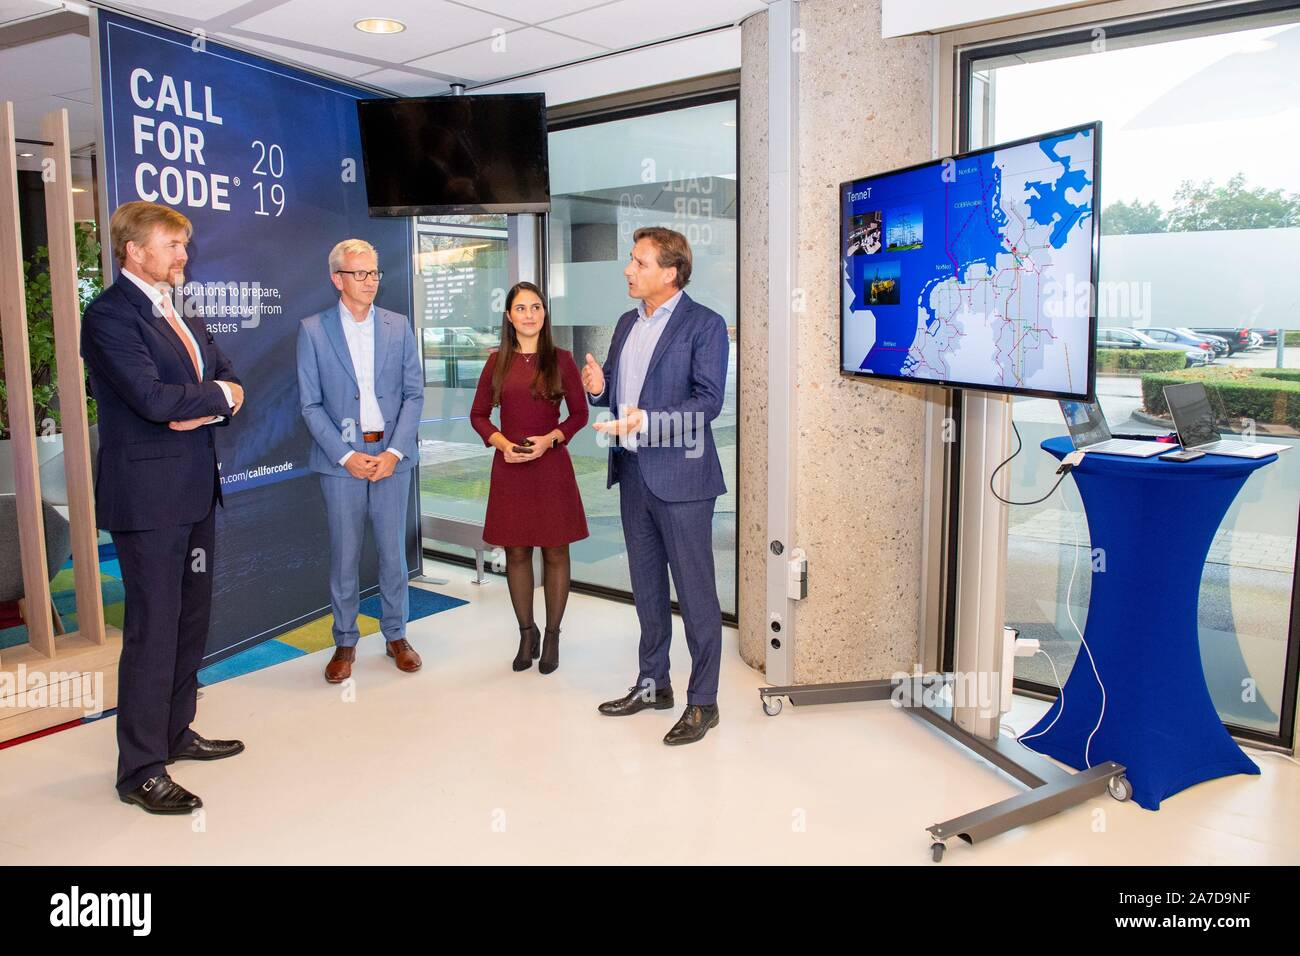 Amsterdam, Netherlands. 01st Nov, 2019. King Willem-Alexander of The Netherlands at a workvisit to the Amsterdam region, Digital Gateway to Europe, he visited the Dutch branch of the NTT data center and information technology company IBM, on November 01, 2019Credit: Albert Nieboer/ Netherlands OUT/Point de Vue OUT |/dpa/Alamy Live News Stock Photo